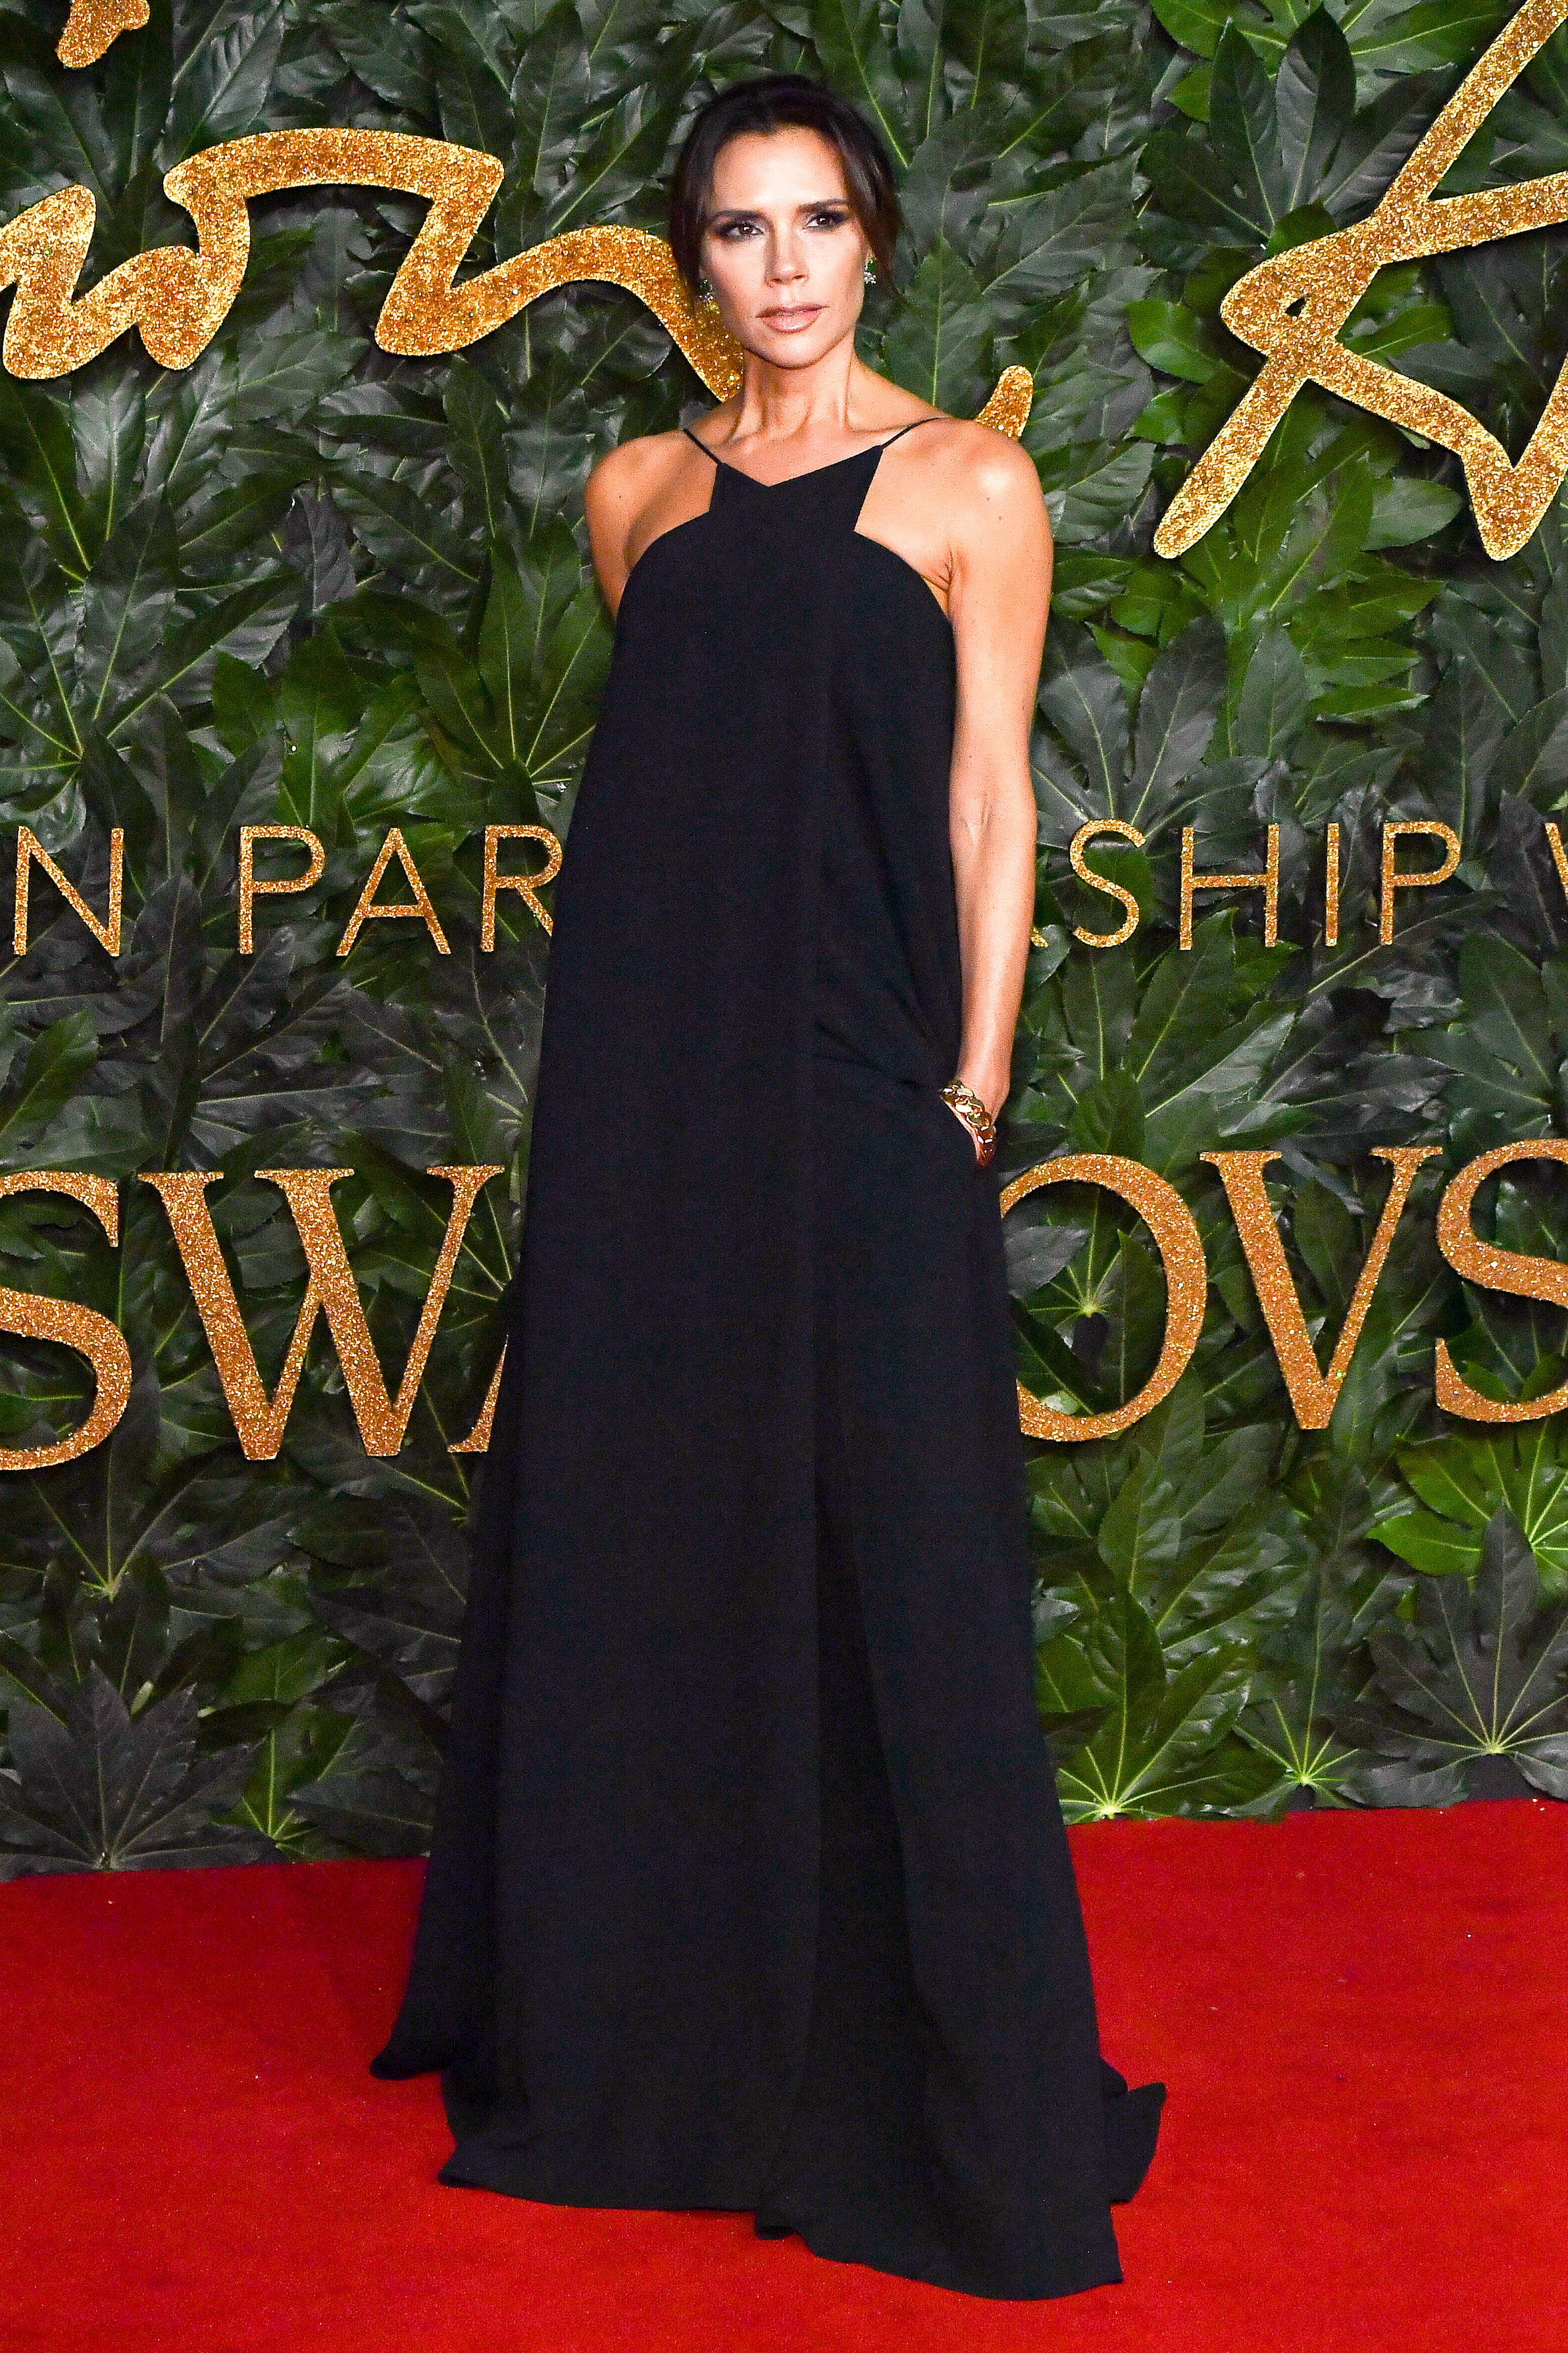 victoria-beckham - The former Spice Girl sported one of her own strappy black designs.